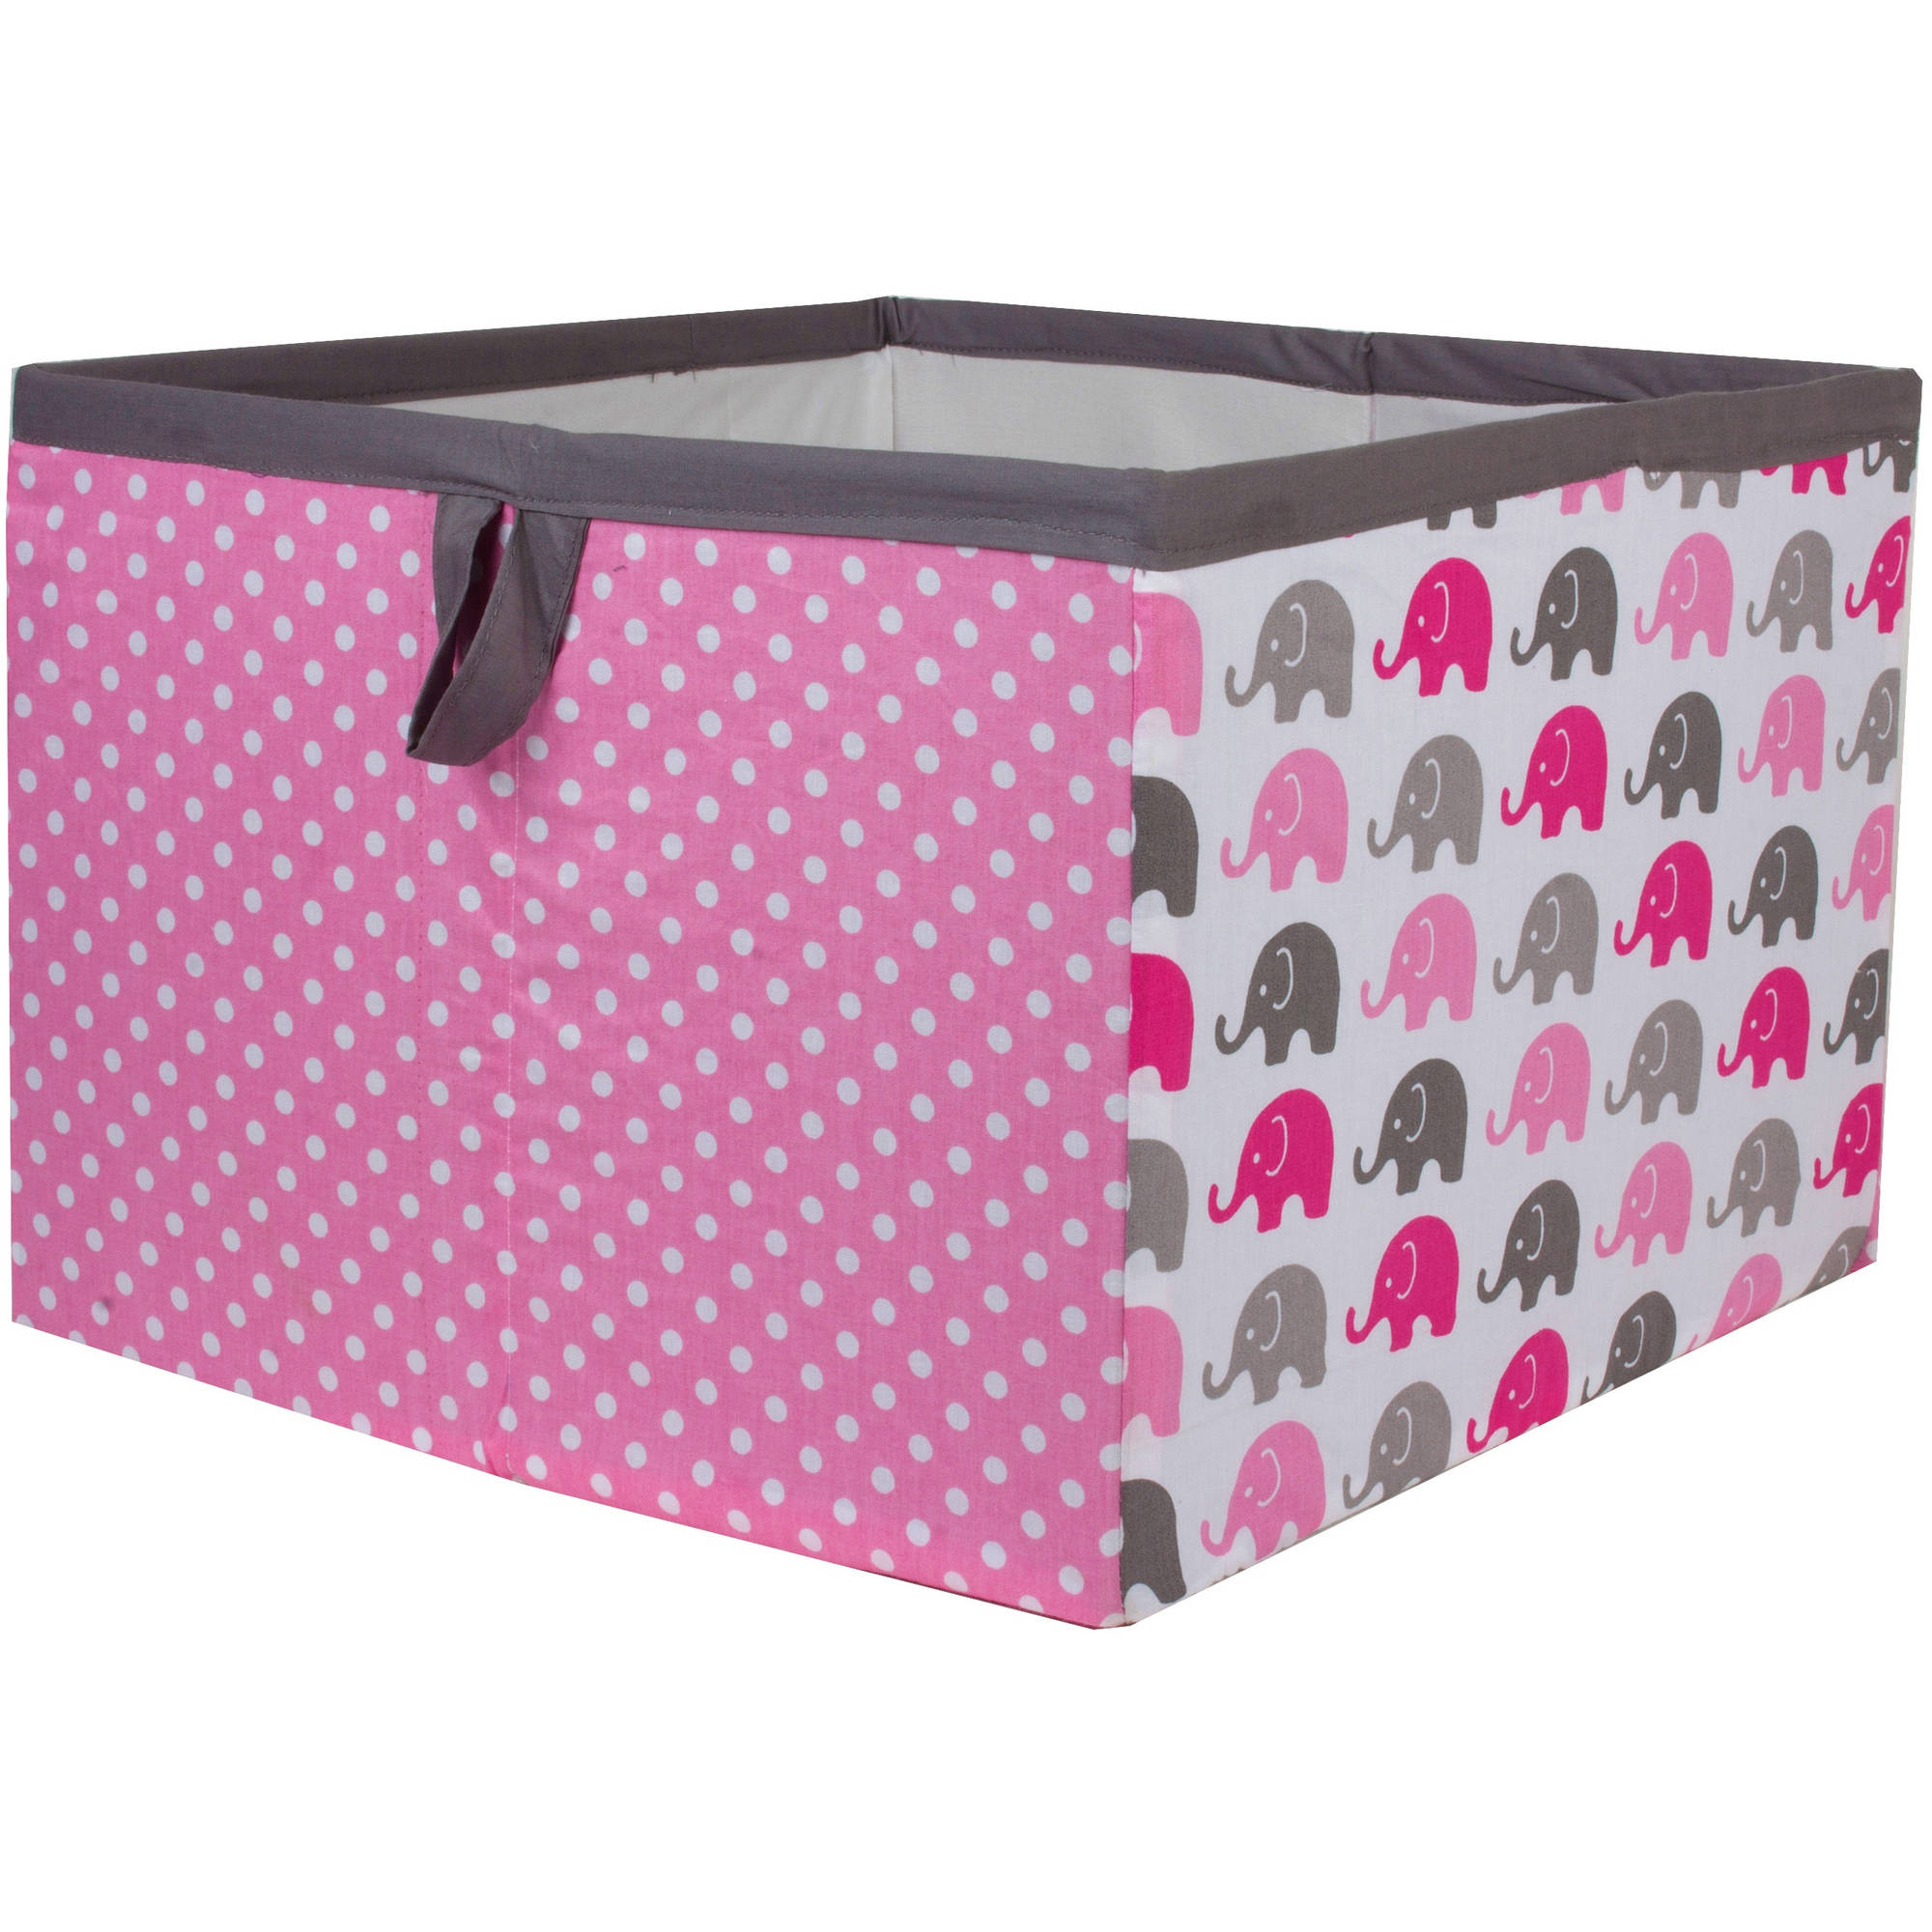 Bacati - Elephants Pink/Gray Cotton Percale Fabric covered Storage, Large Box, 14 x 14 x 10 inches